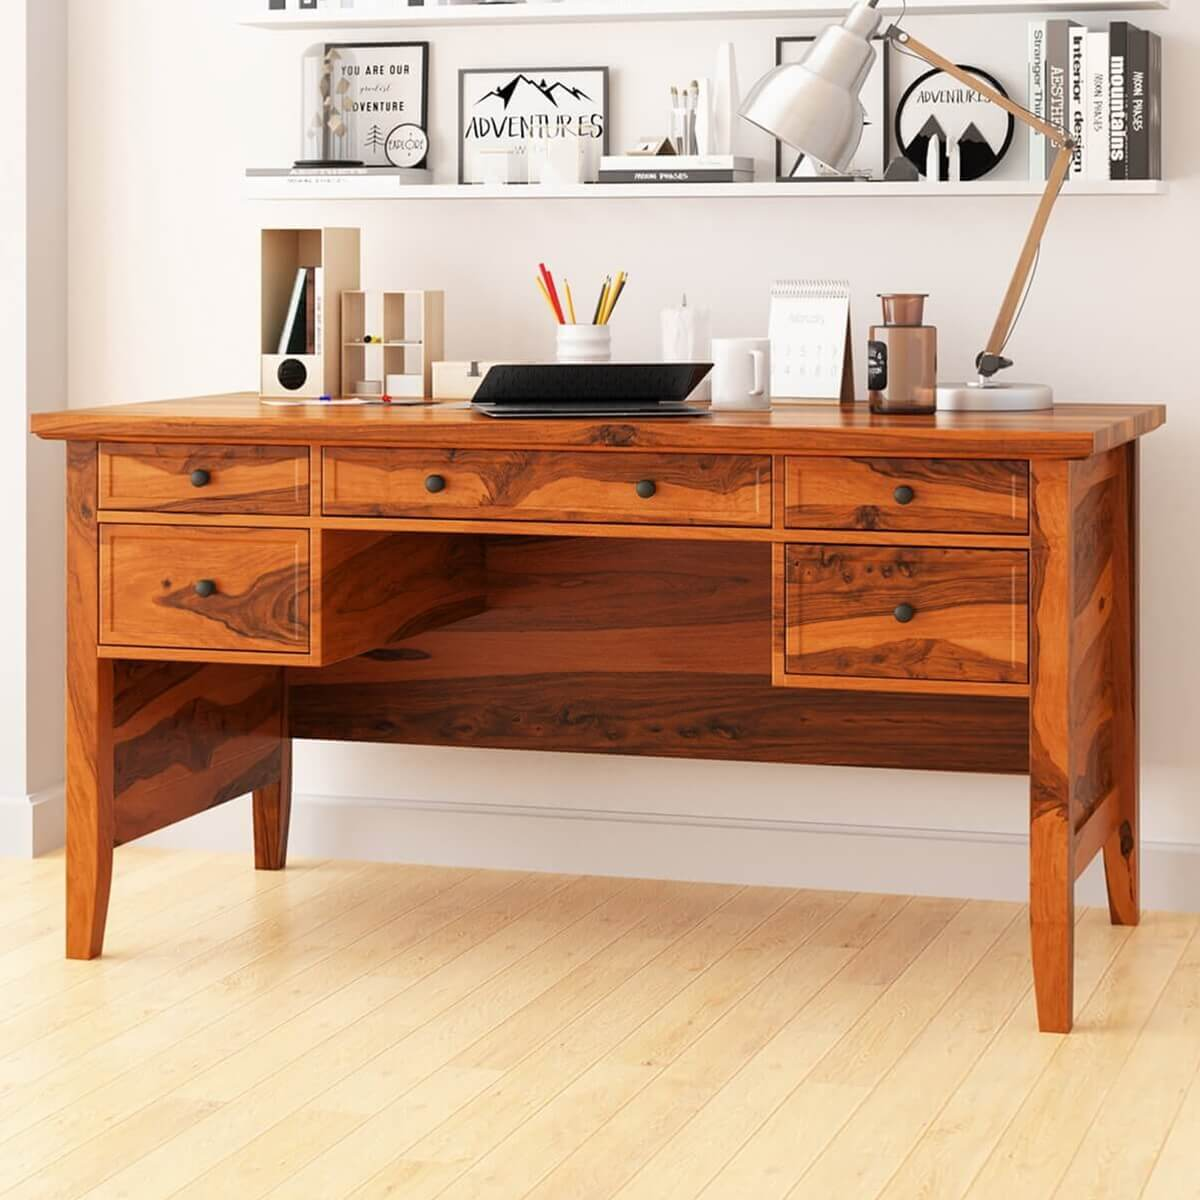 calypso rustic solid wood 5 drawer writing queen anne style desk. Black Bedroom Furniture Sets. Home Design Ideas